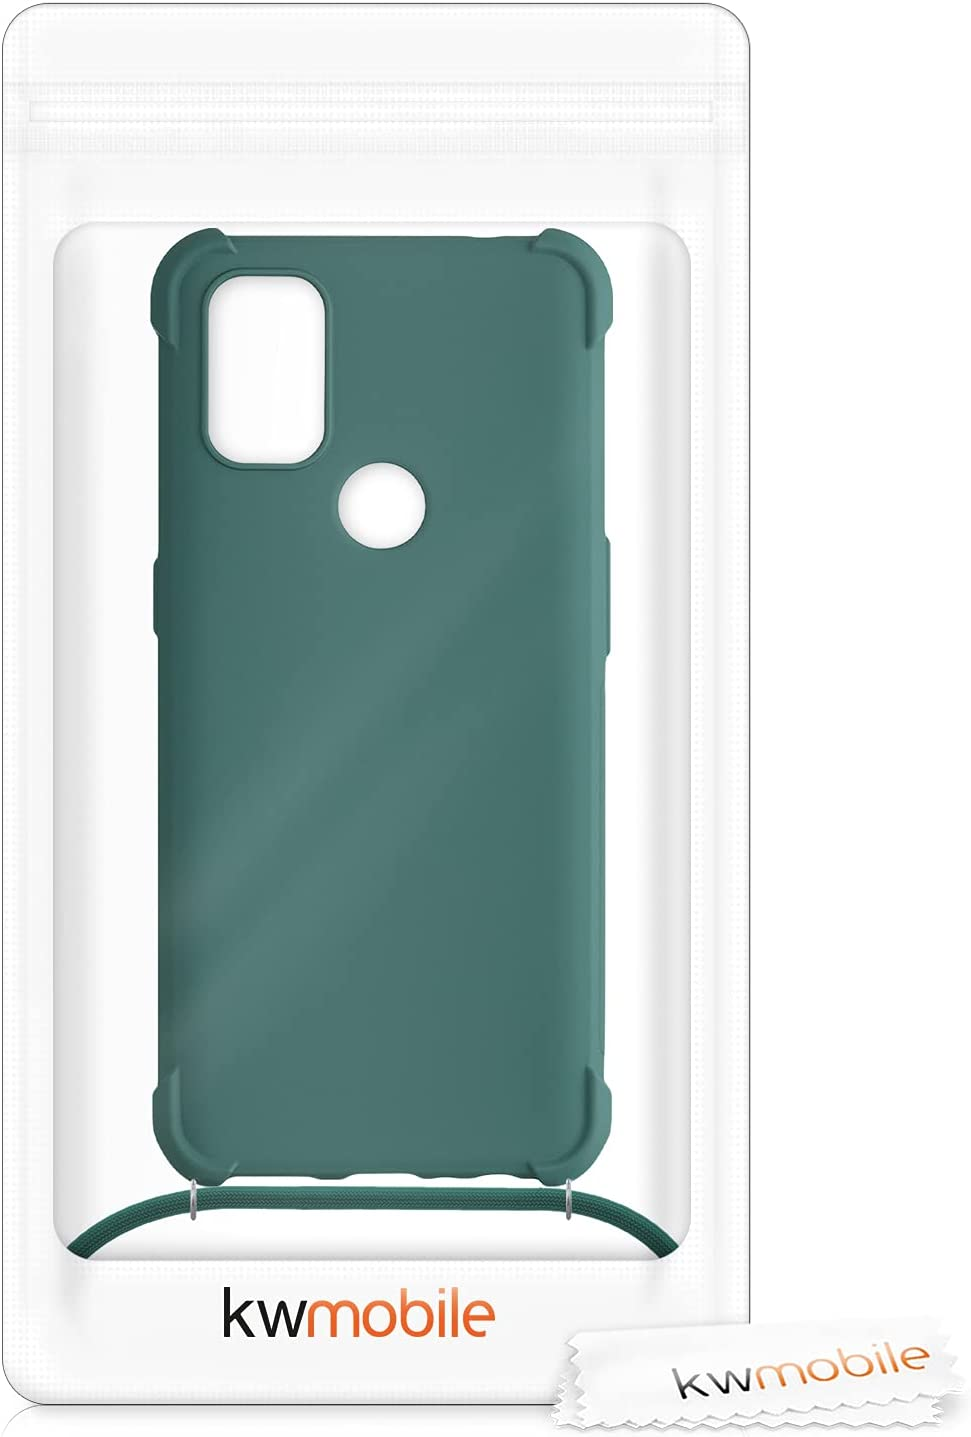 kwmobile Case Compatible with OnePlus Nord N10 5G - Crossbody Case Soft Matte TPU Phone Holder with Neck Strap - Dark Green